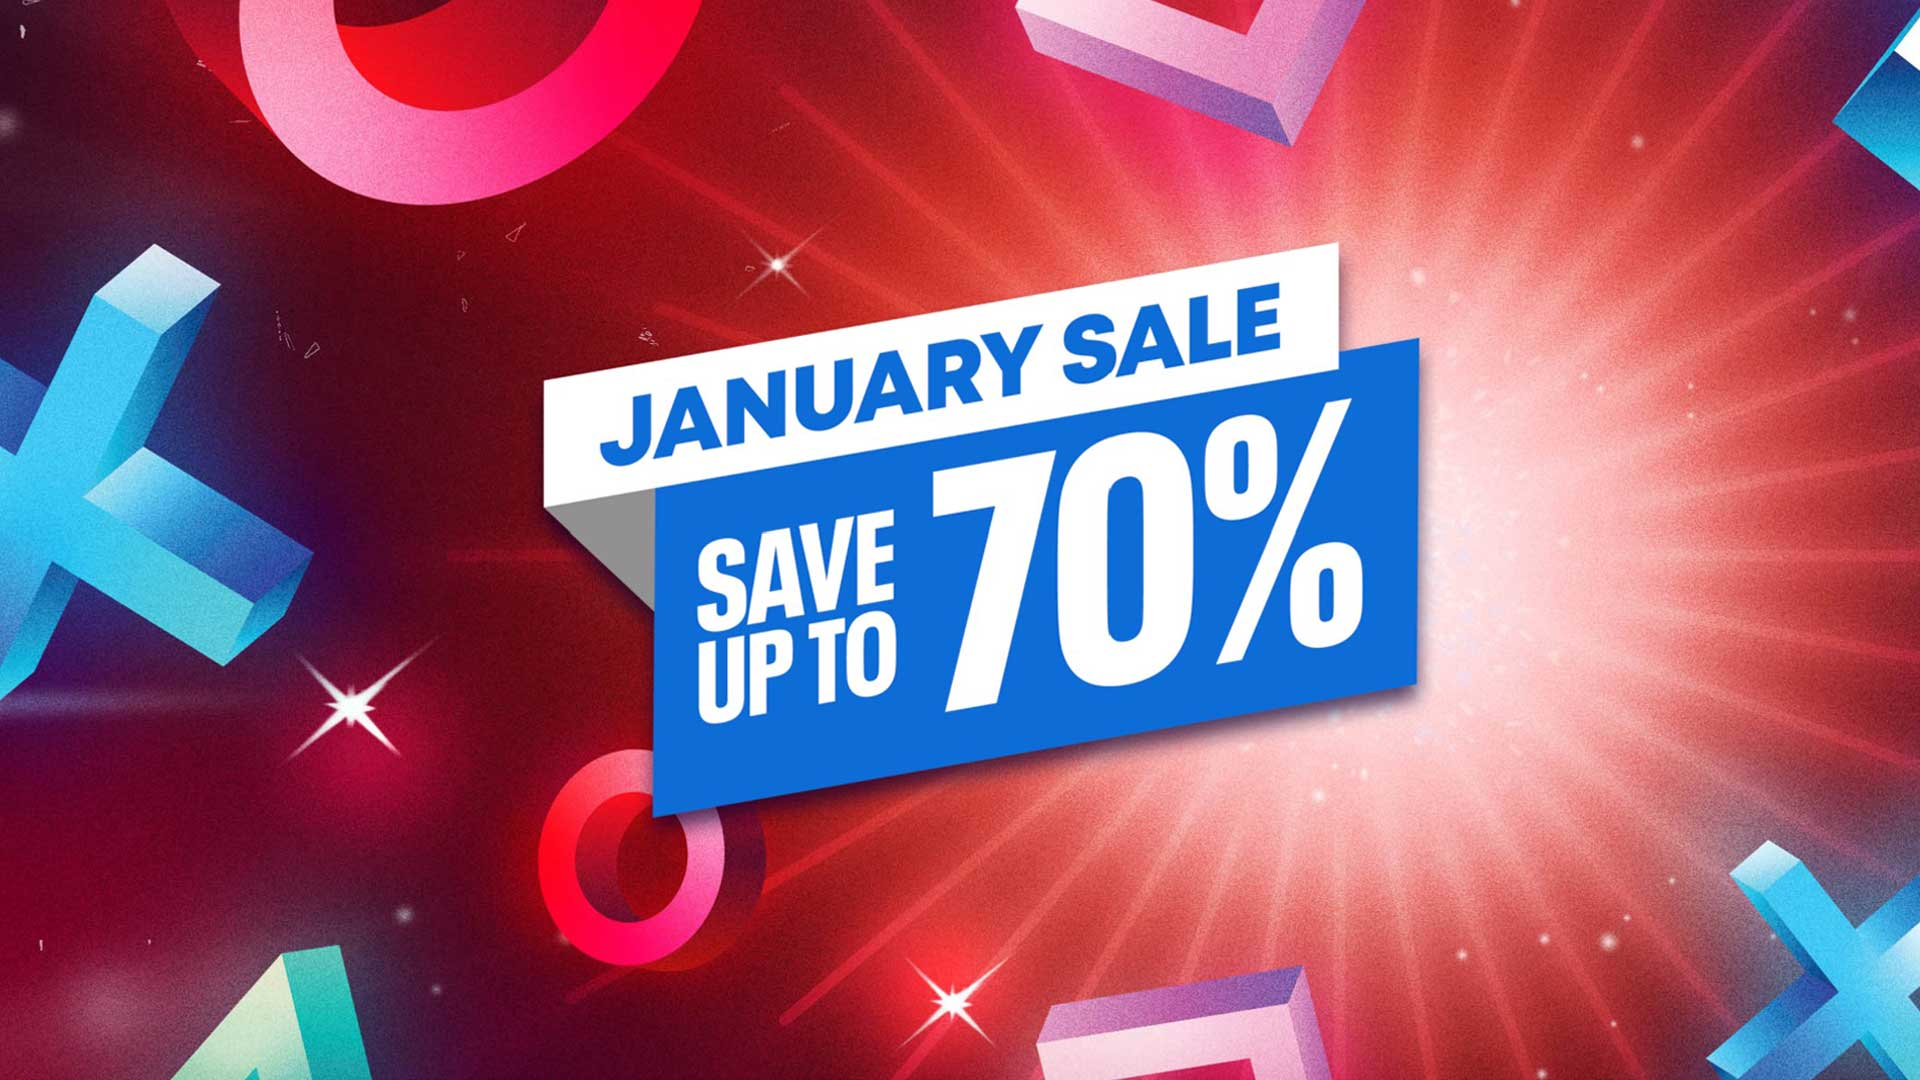 Playstation Store January Sale Now Live Ps4 And Ps5 Games On Sale